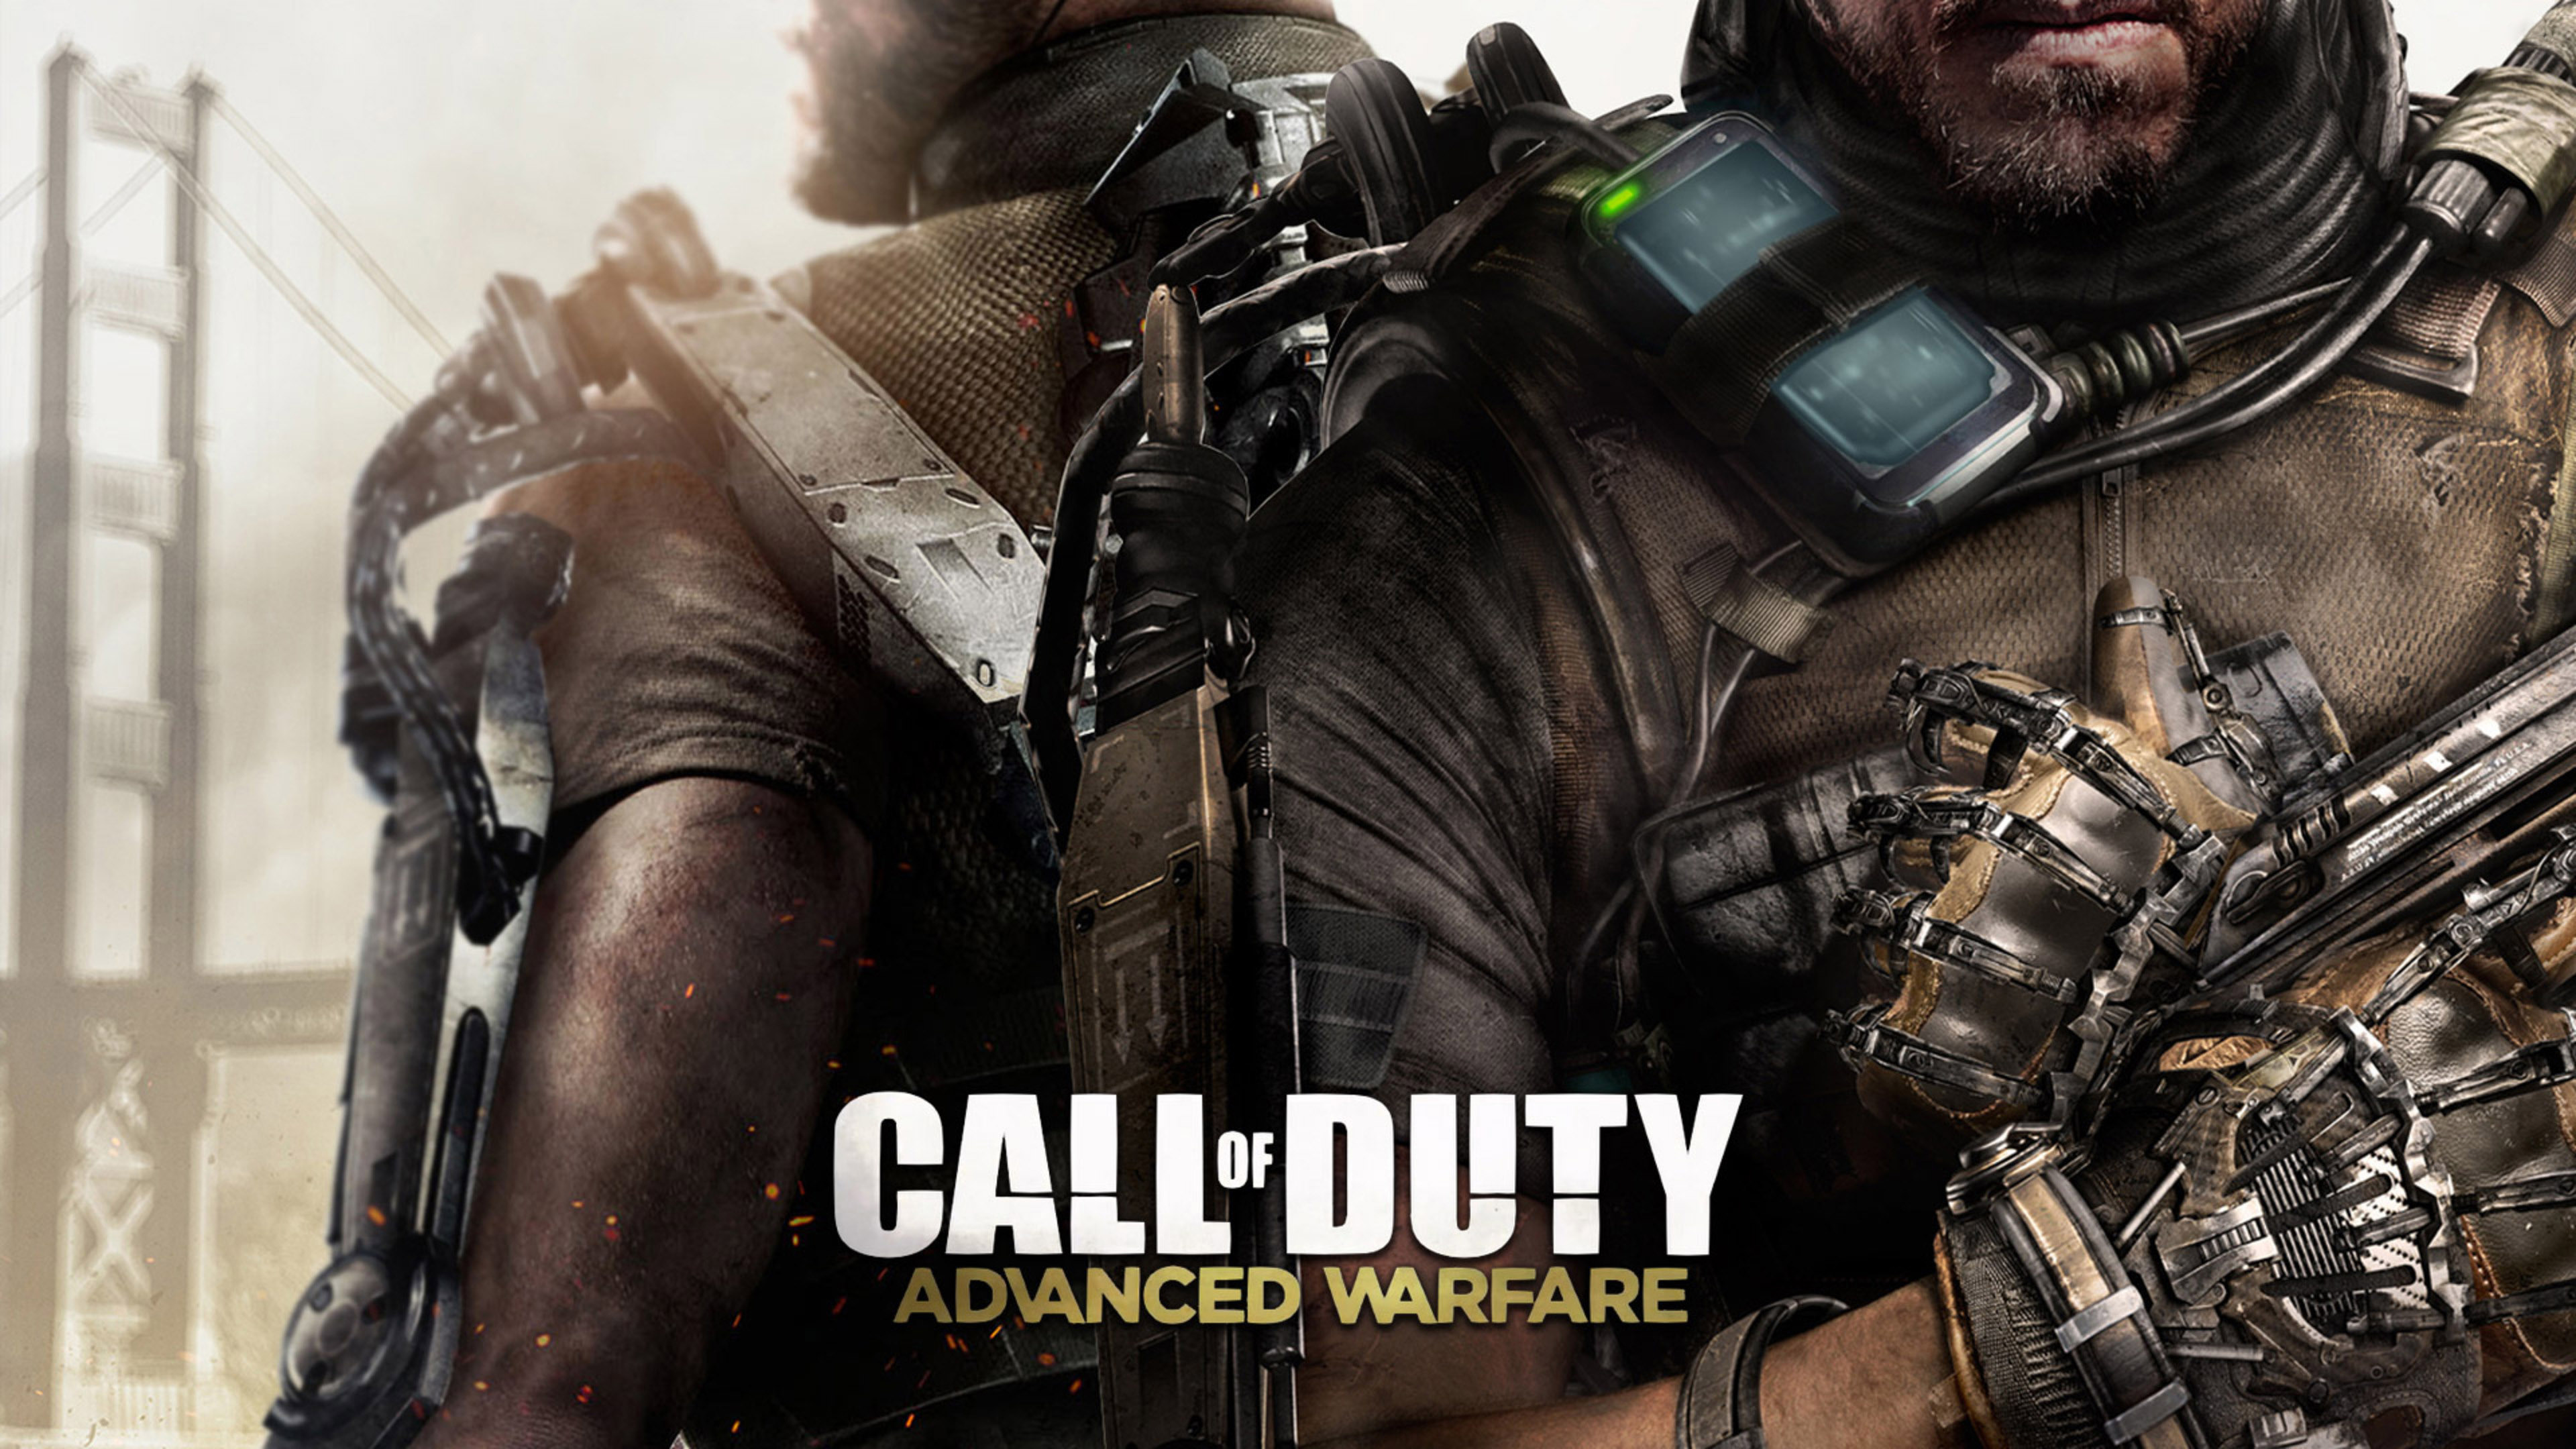 Call of Duty Advanced Warfare Review: Flawed Future